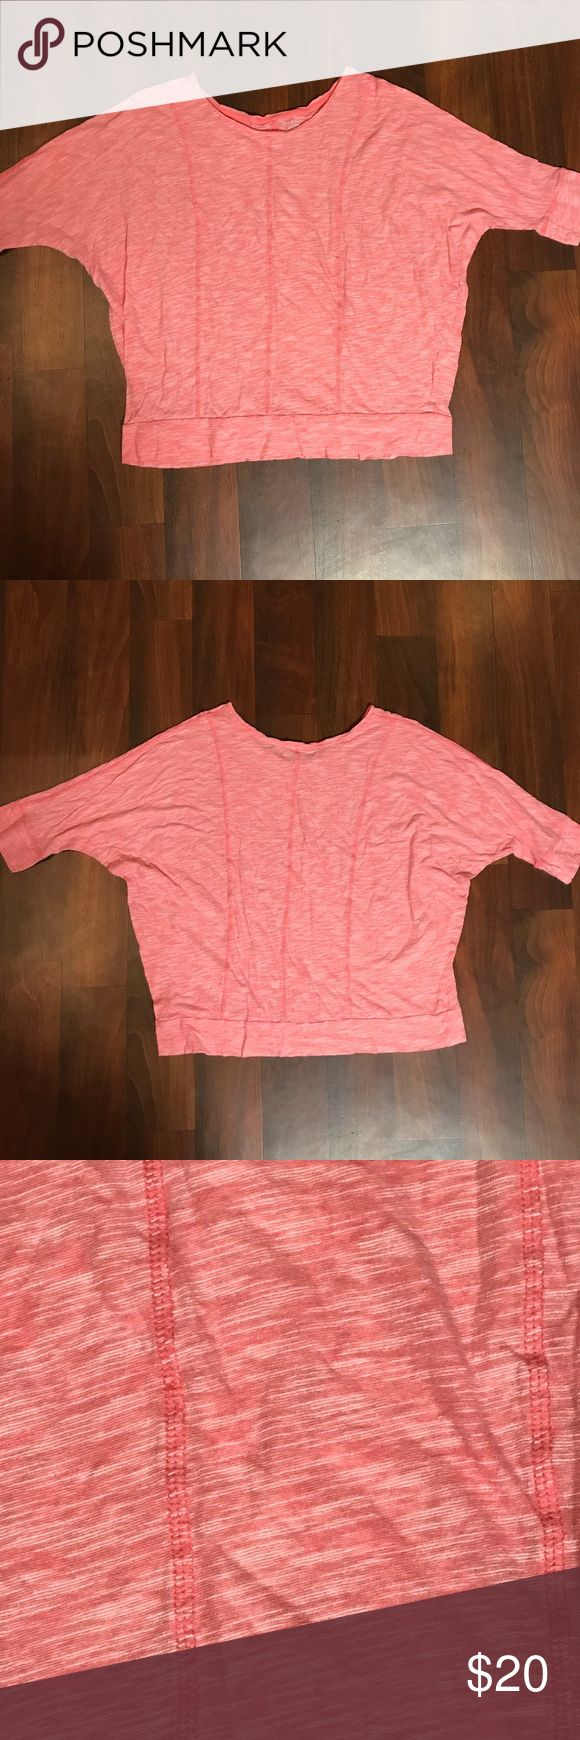 Lane Bryant Plus Size Red Top 22/24 Lane Bryant Plus Size Red Top with 3/4 Sleeves Size 22/24 Brand Lane Bryant  * Excellent condition with no sign of wear, tear, or stains. * Smoke Free Home * Pet Free Home * Daily Shipper * Save with bundle discount! * Open to reasonable offers Lane Bryant Tops Blouses